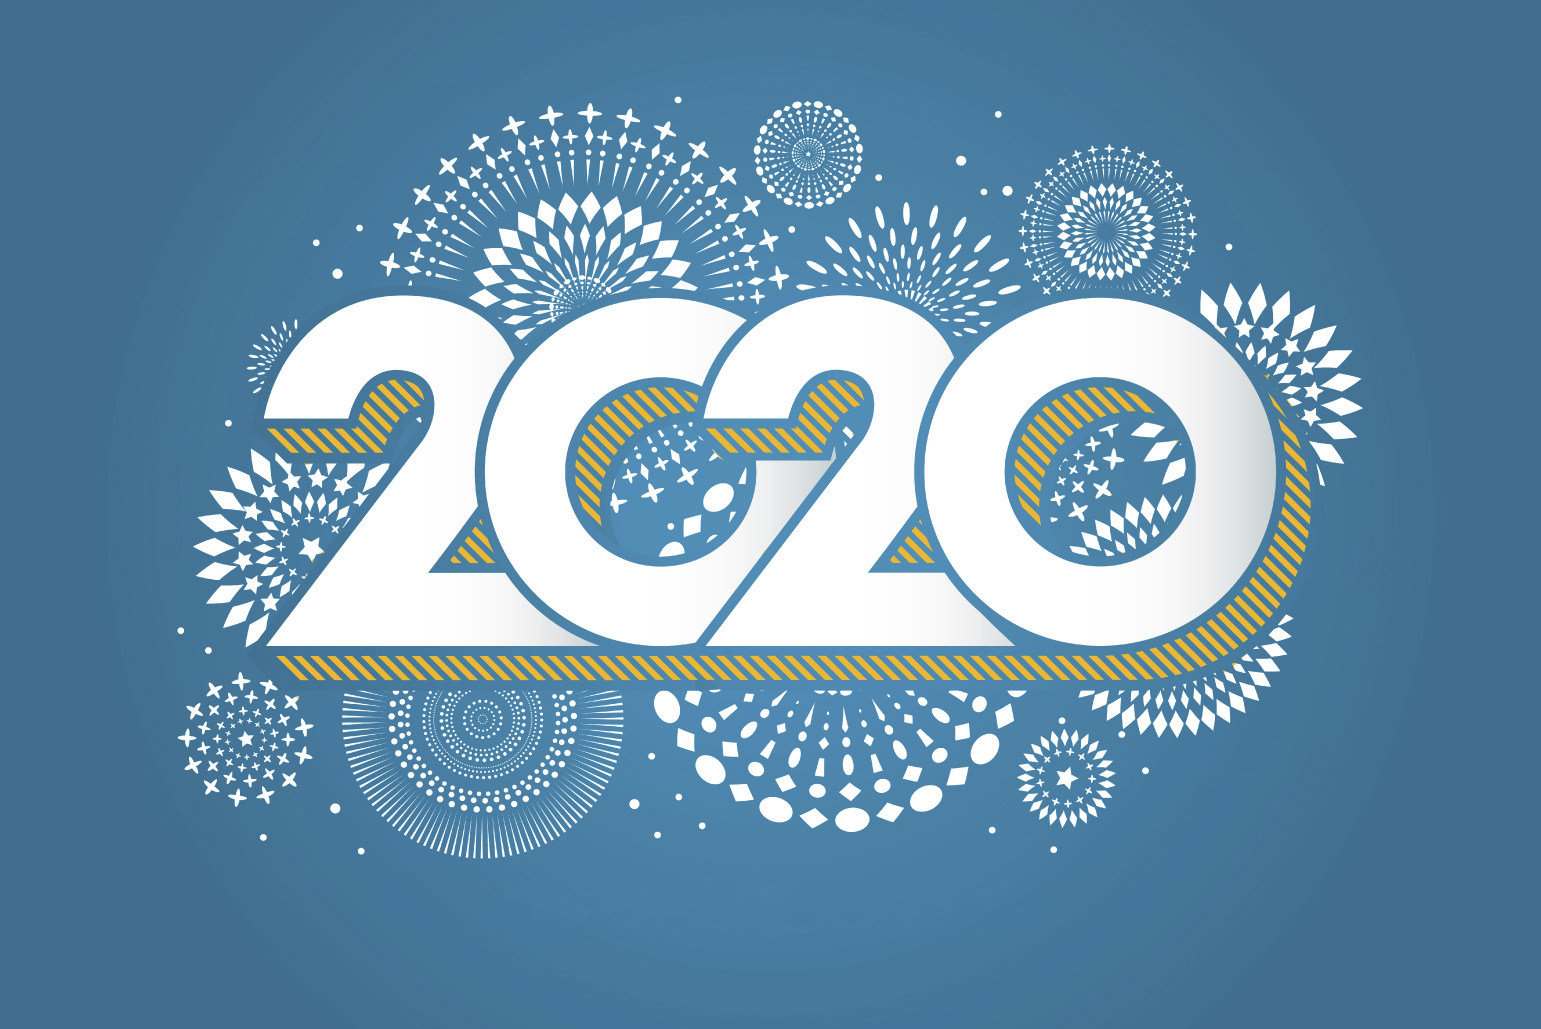 2020 and fireworks graphic